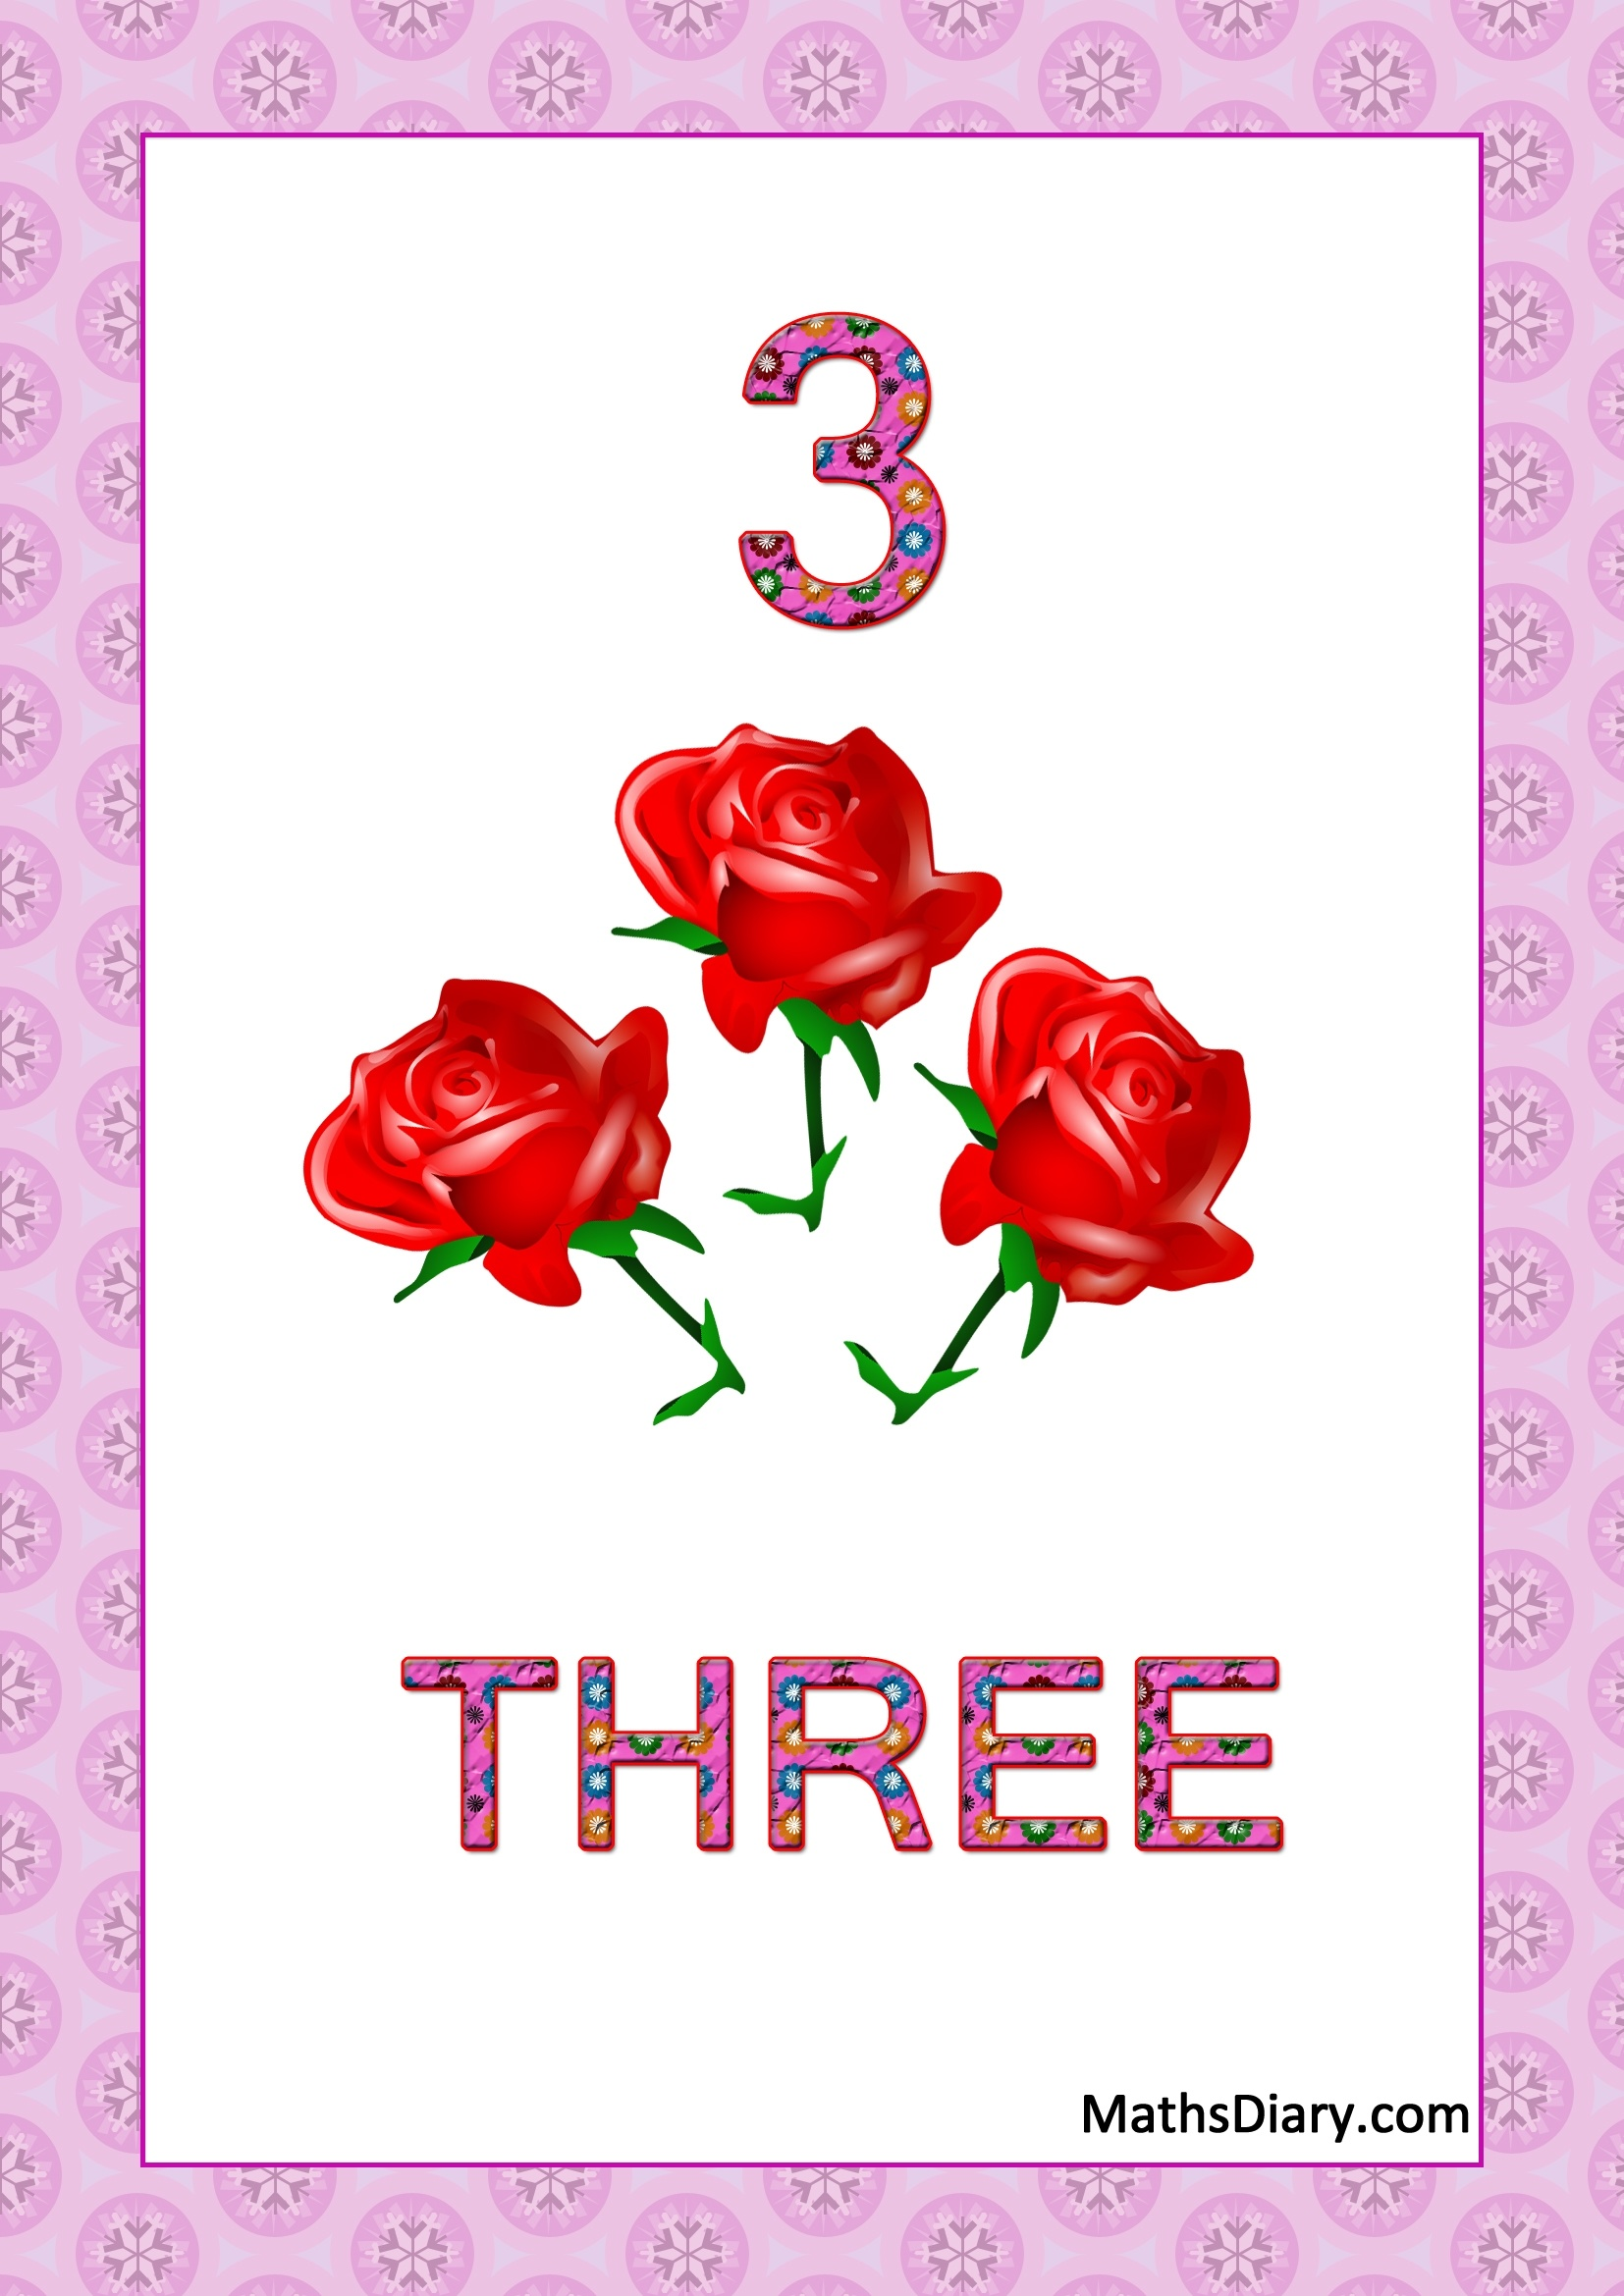 Learning Counting And Recognition Of Number 3 Worksheets Level 1 Help Sheets Part 3